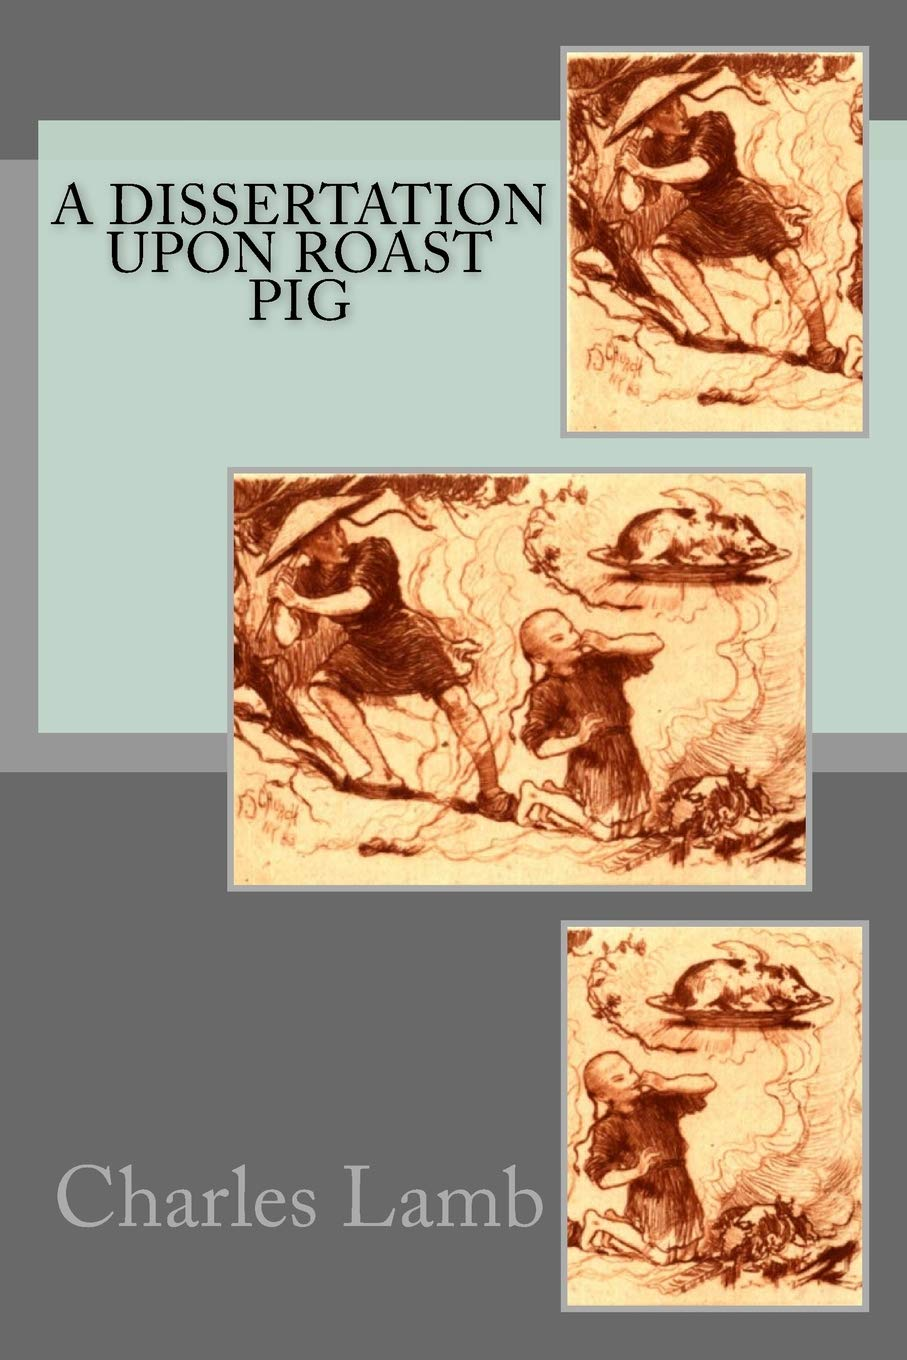 a dissertation upon roast pig illustrated